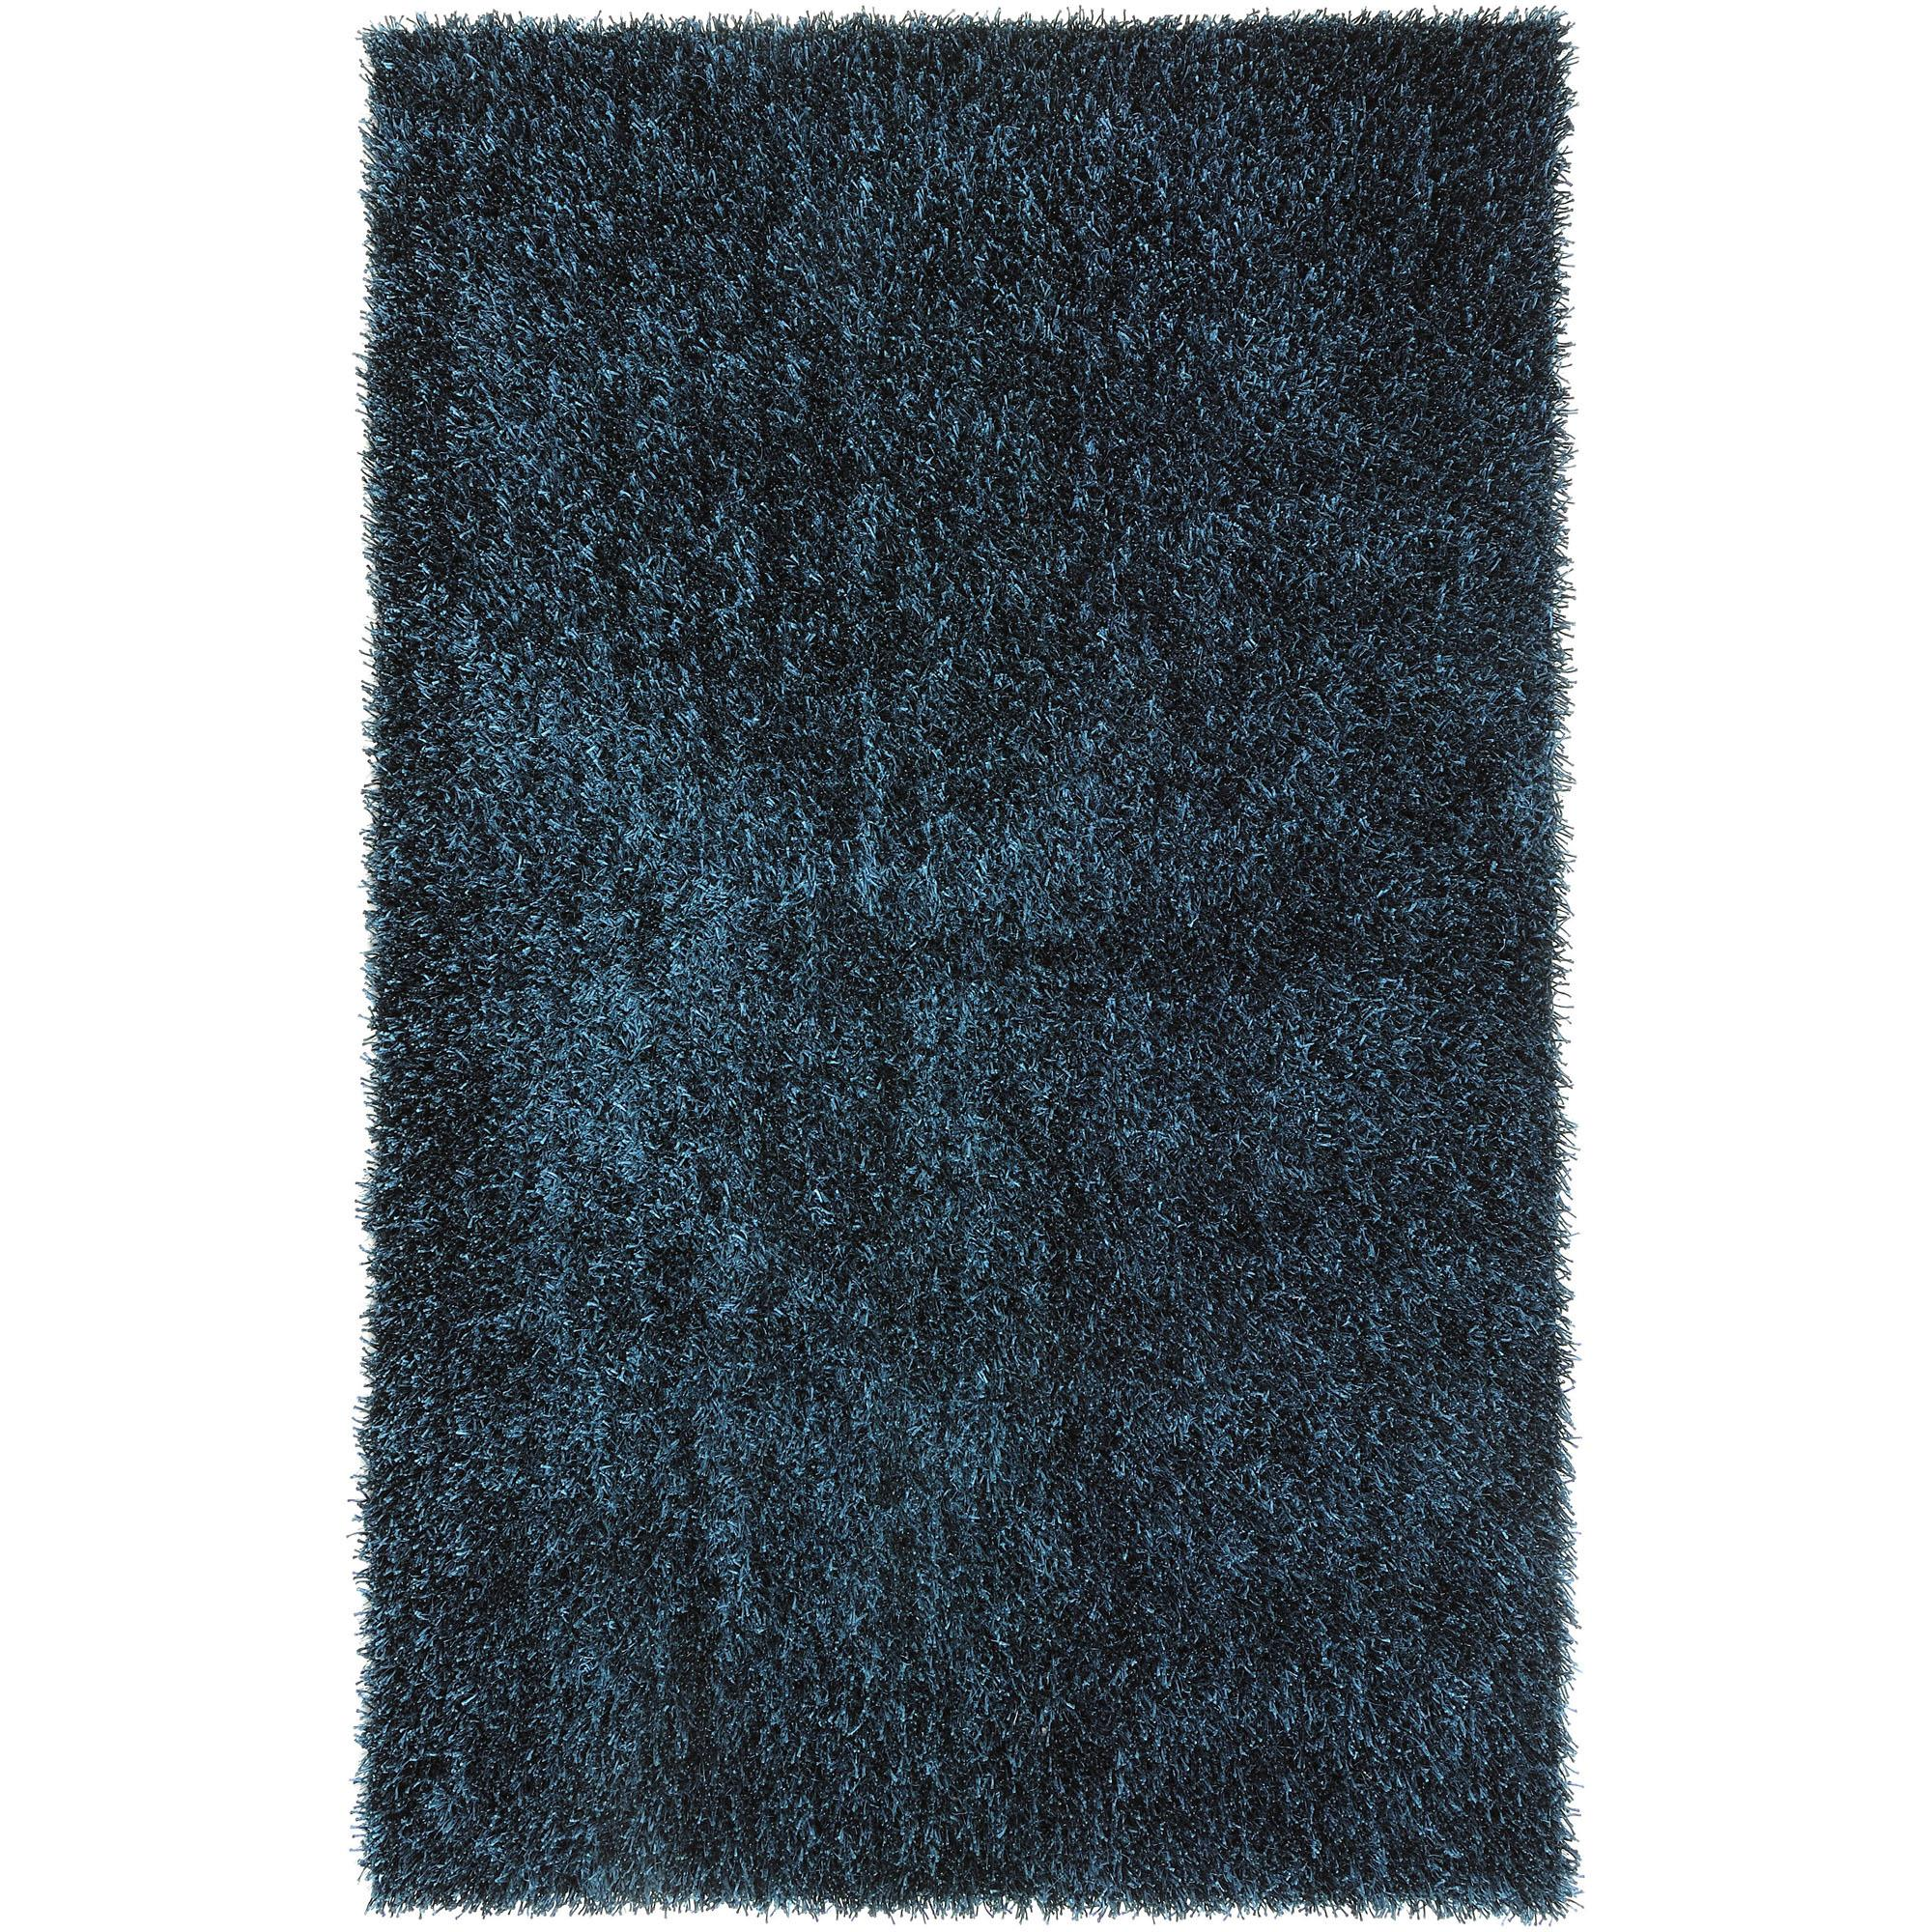 JAIPUR Rugs Flux 7.6 x 9.6 Rug - Item Number: RUG101754